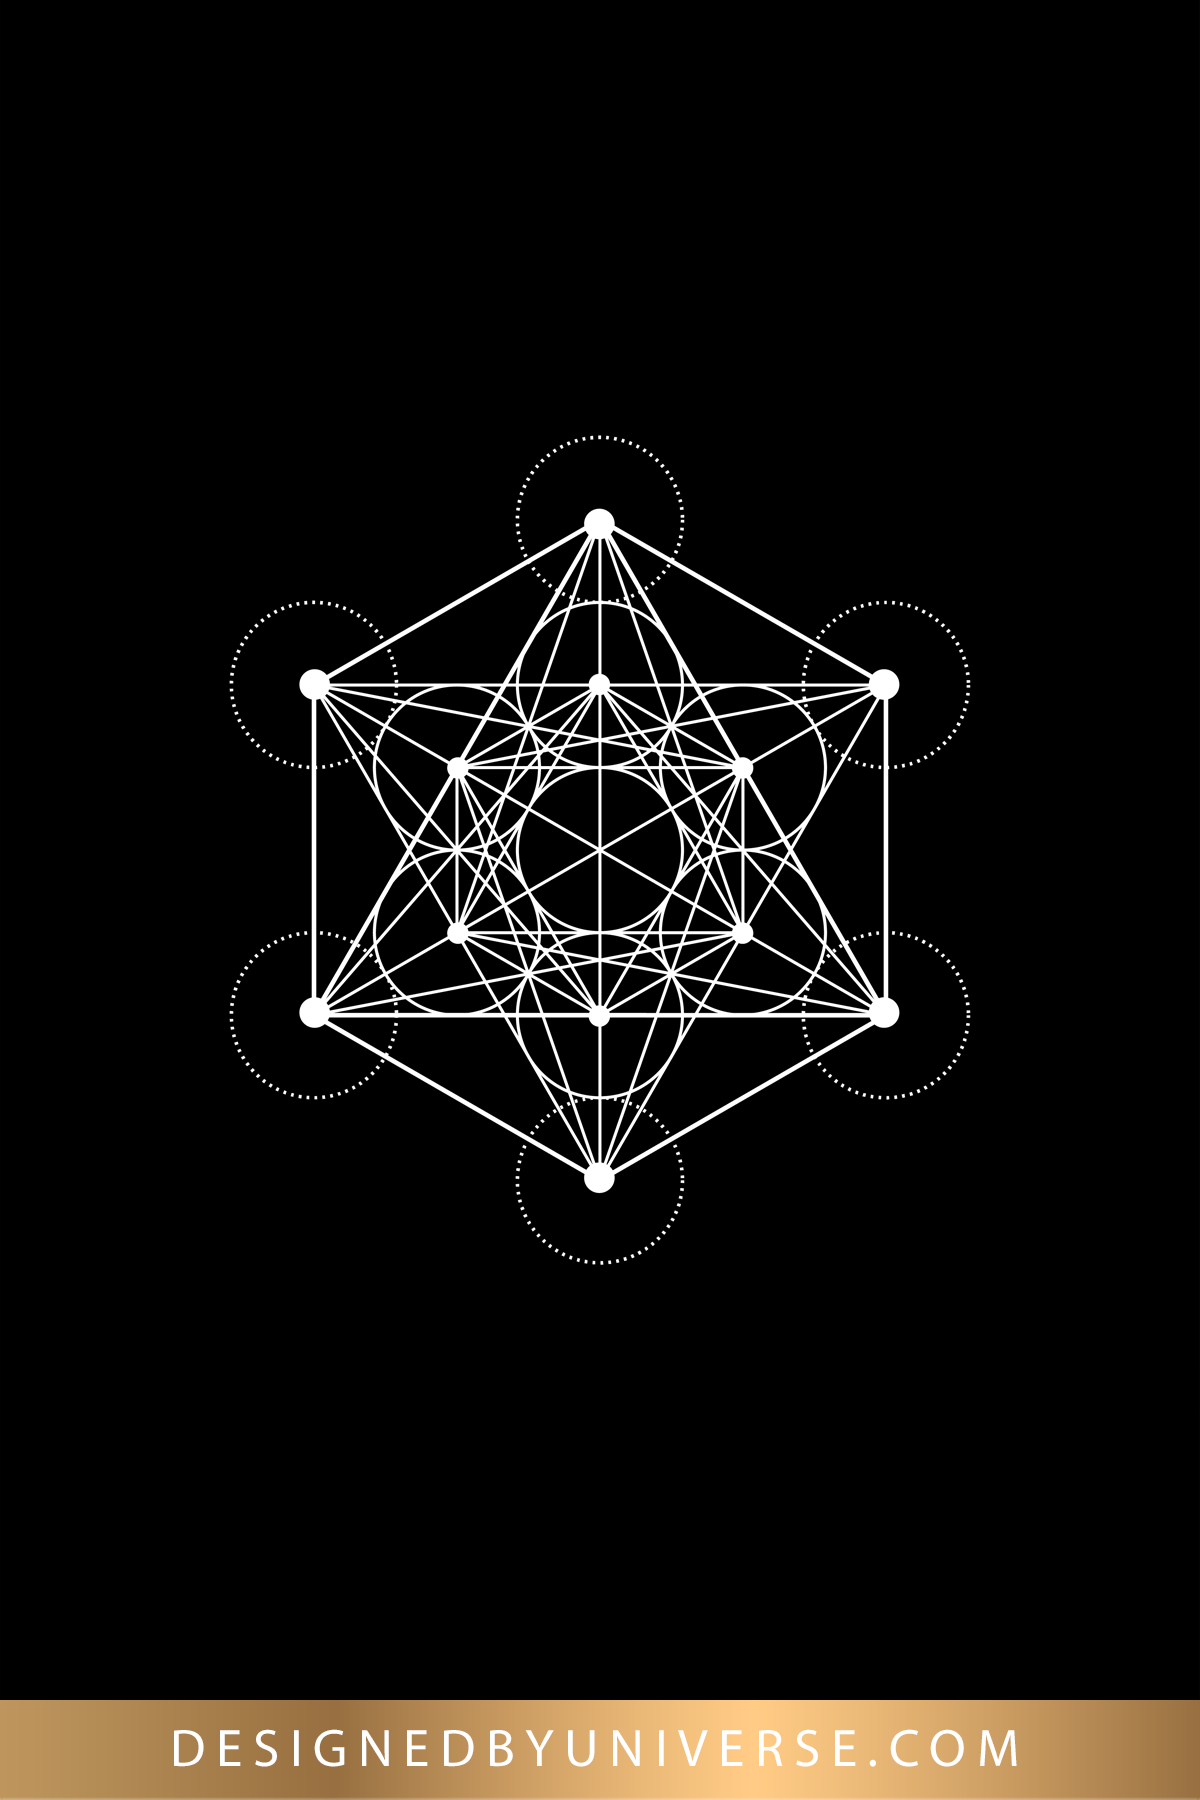 A Minimalist Metatron S Cube Poster In Black And White